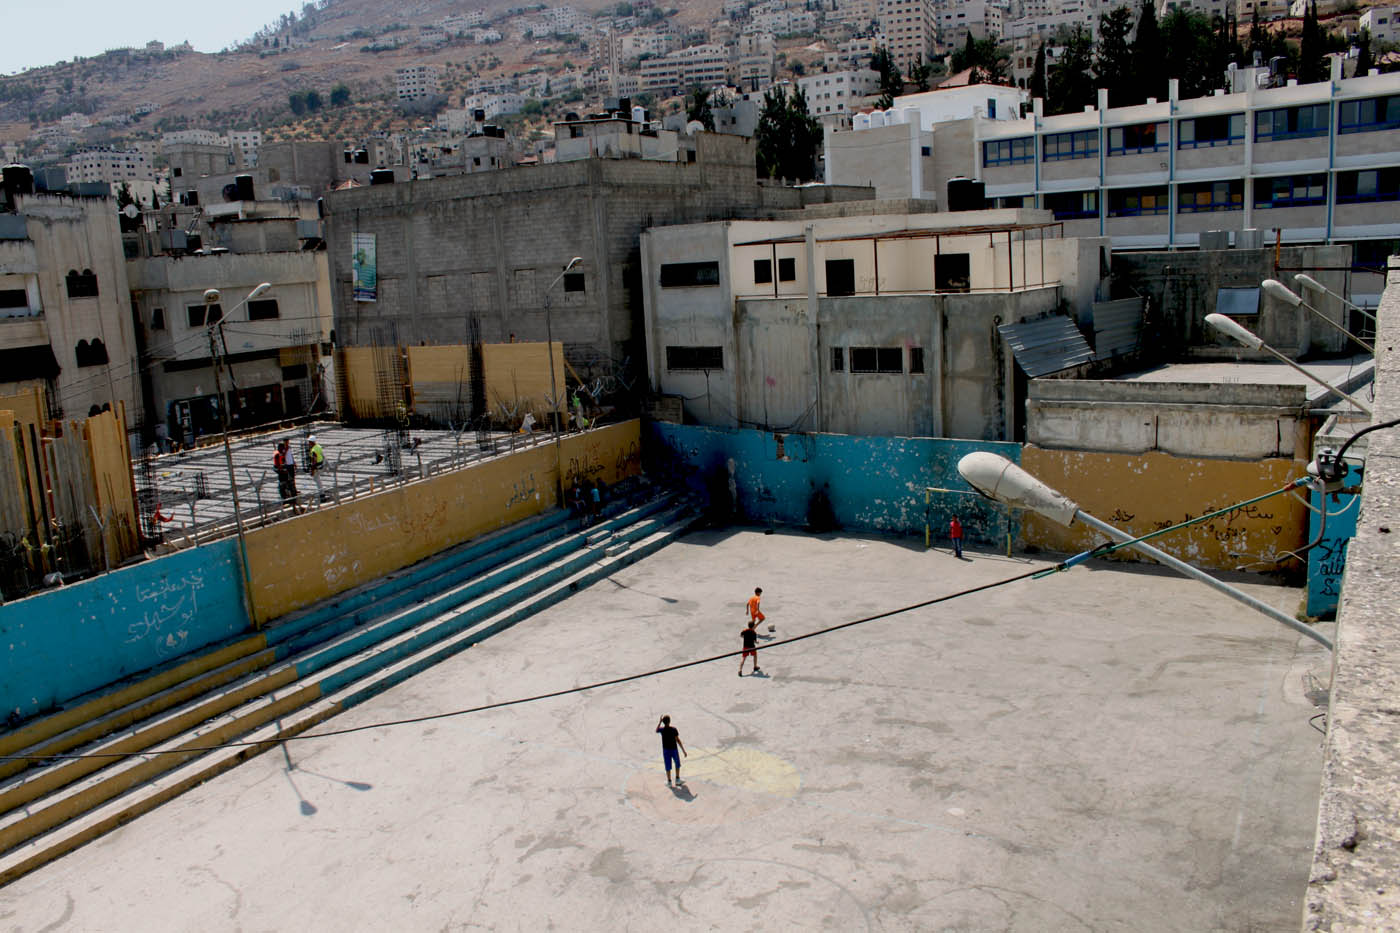 If you try and go behind the houses in Balata camp occasionally you will find a football pitch squeezed between the houses. The only proper place to play football in Balata Camp.